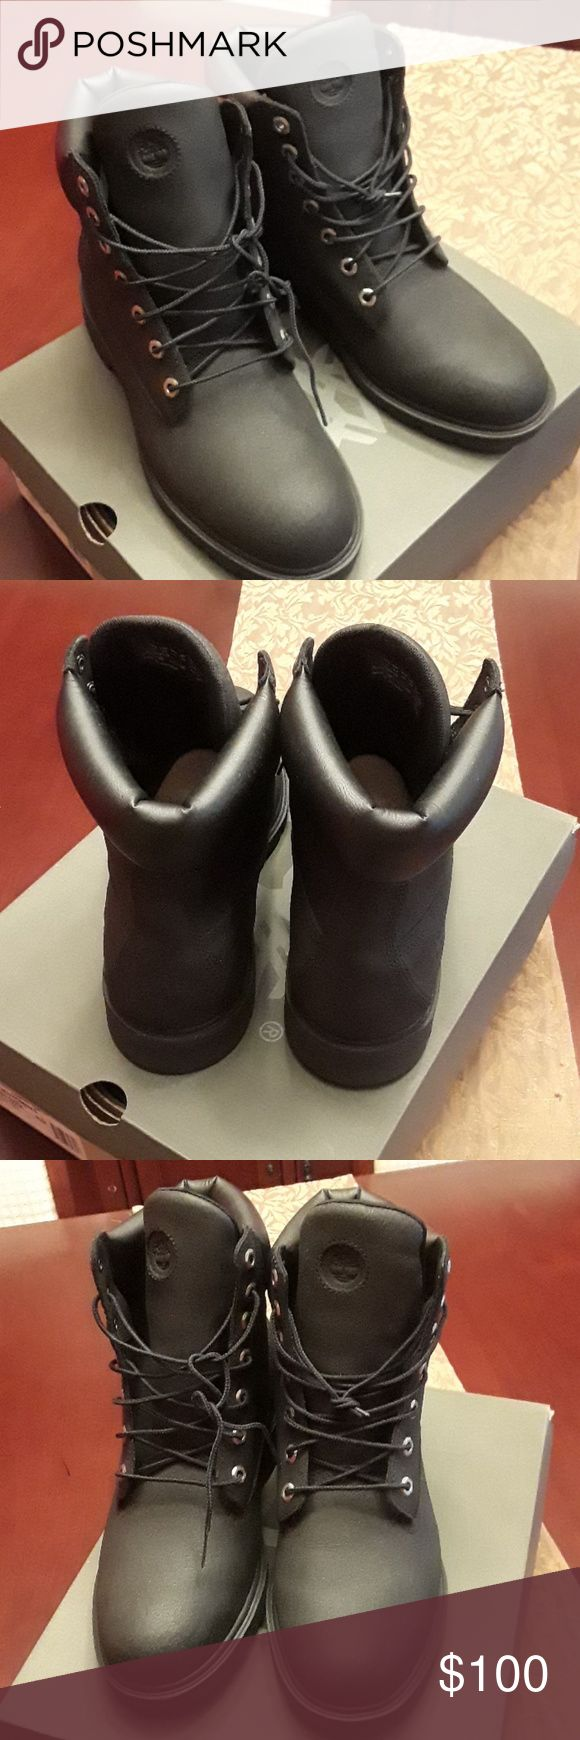 Men's timberland leather boots 10 Worn once without original box Timberland Shoes Boots